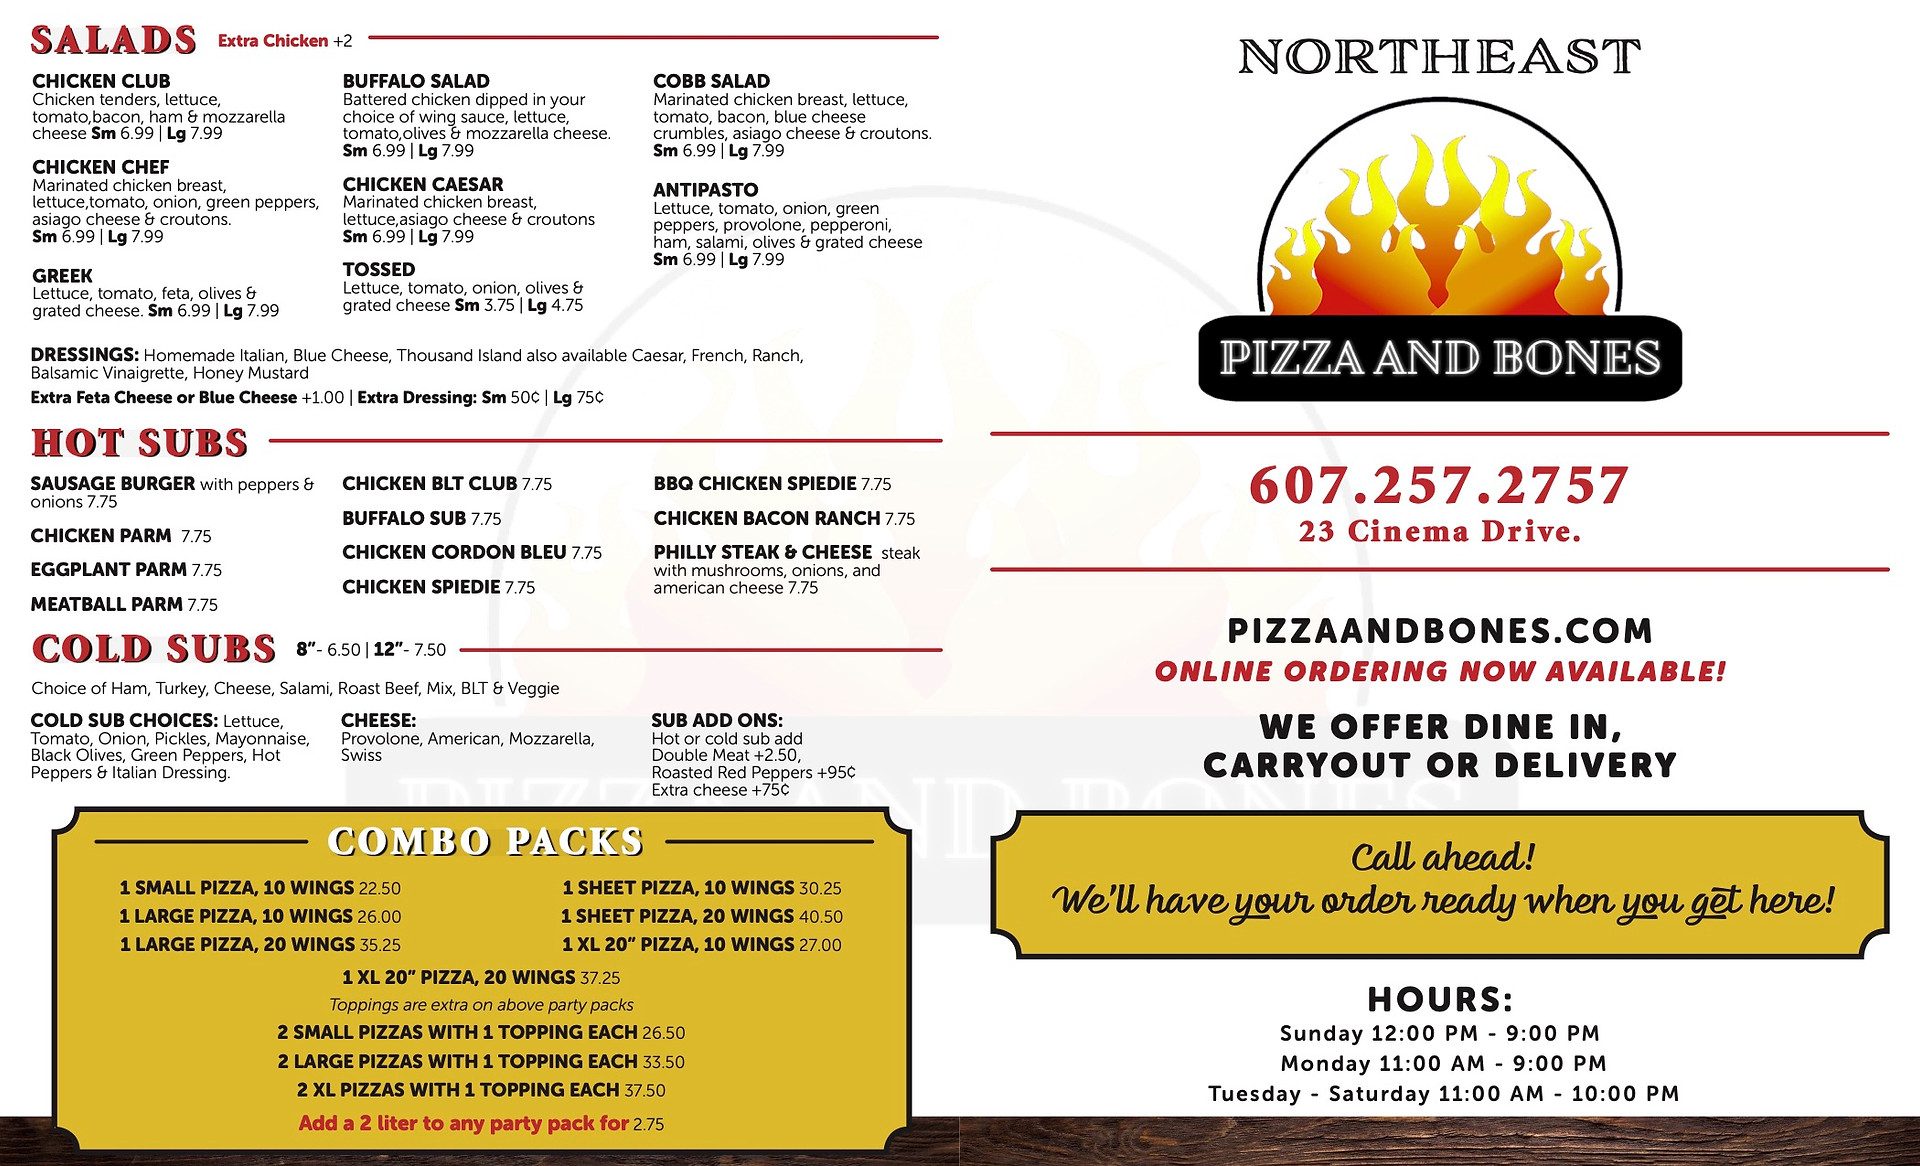 Pizza and Bones New Location revised.jpg